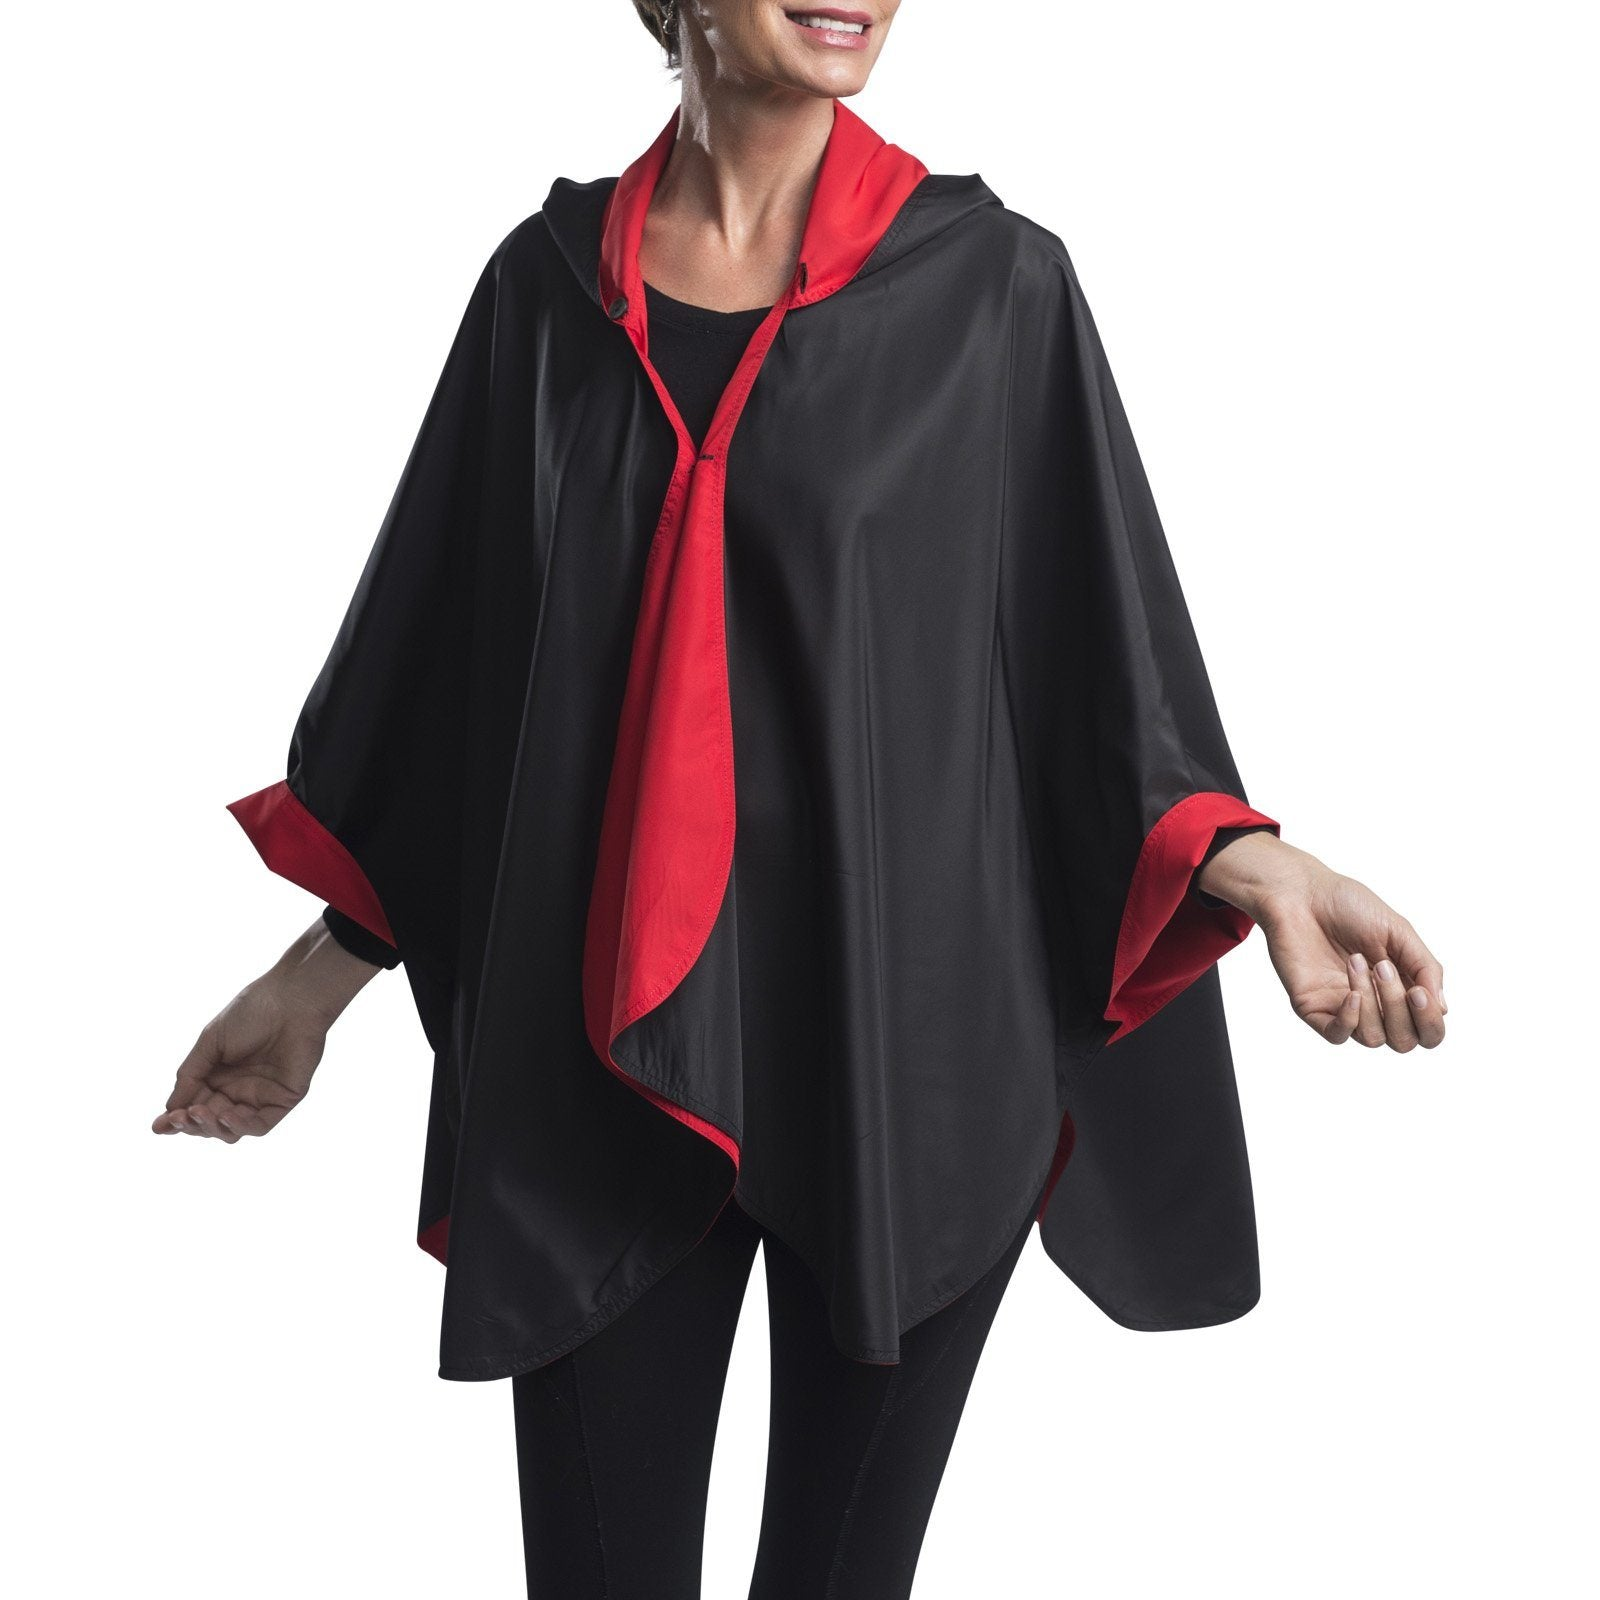 Women wearing a Black & Red RainCaper travel cape with the Black side out, revealing the Red color at the lapels and cuffs